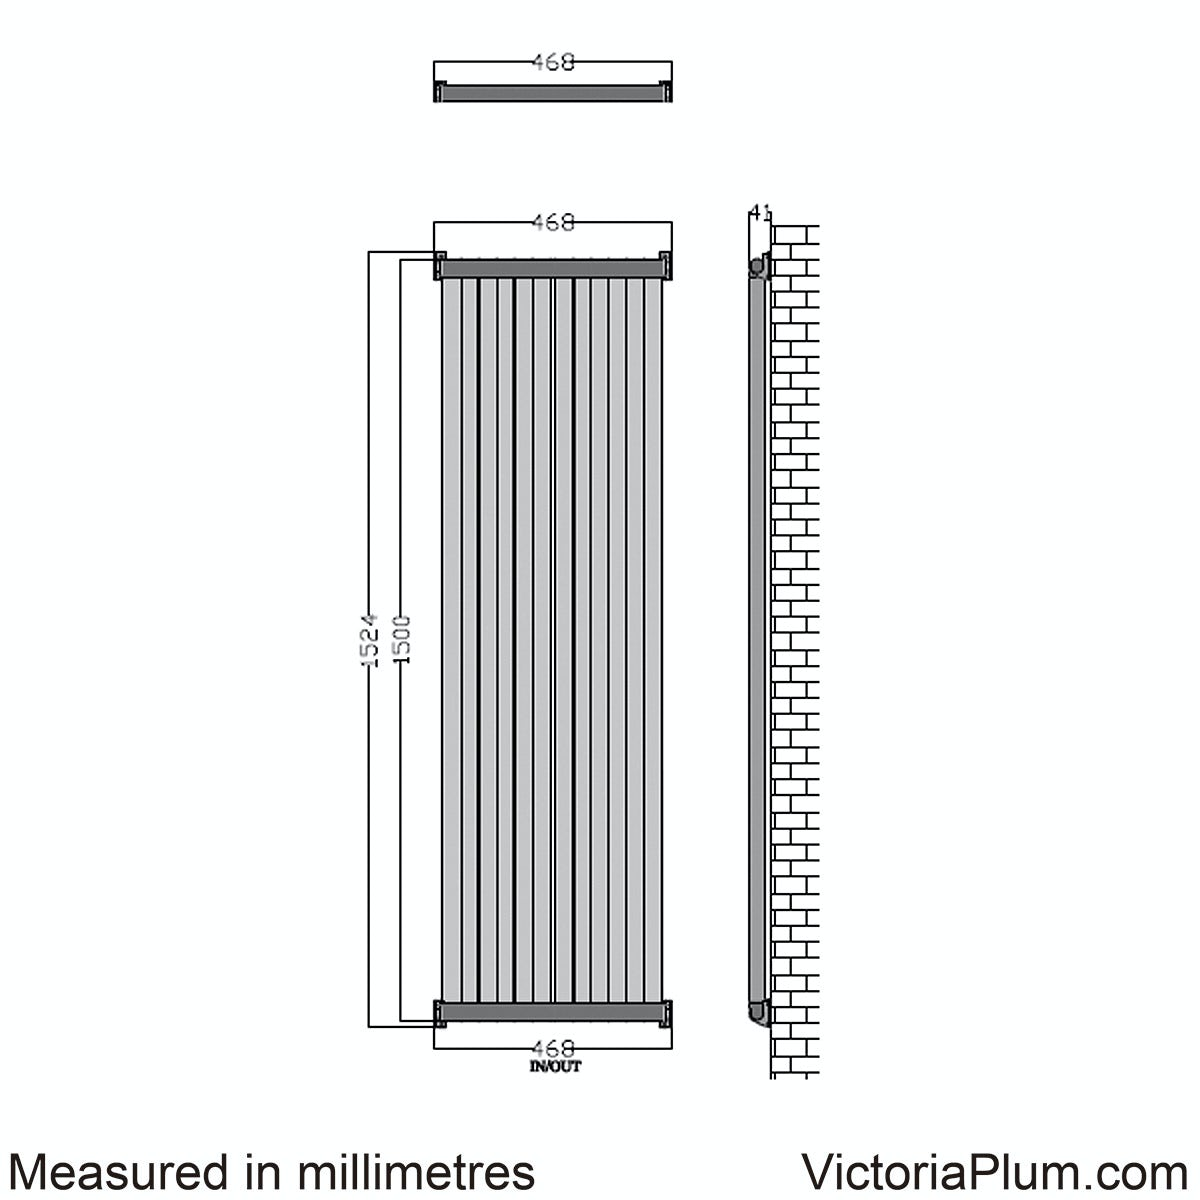 Dimensions for Zephyra anthracite vertical radiator 1800 x 468